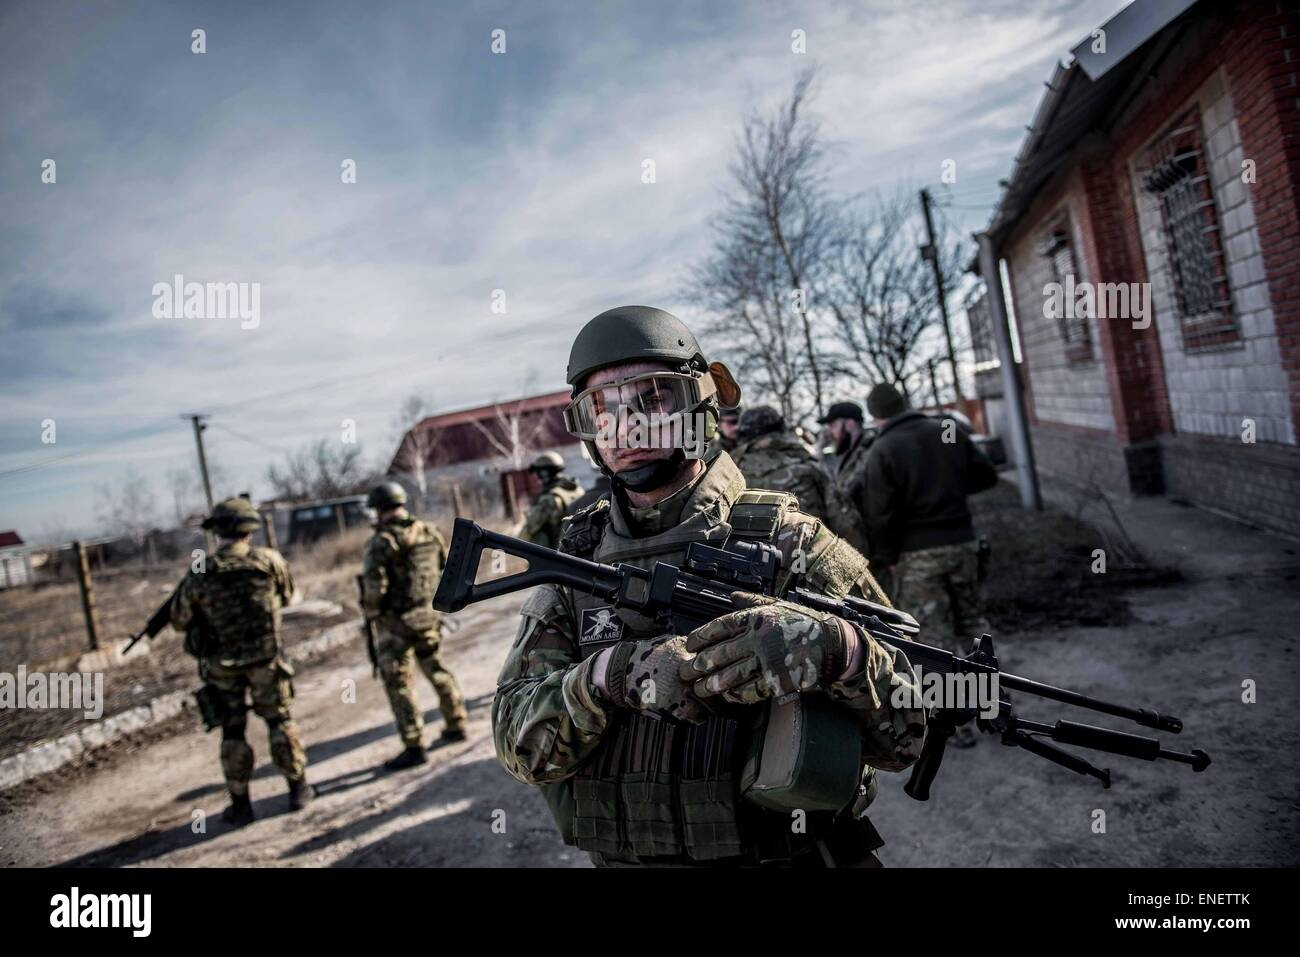 A fighter from the Azov Battalion near the front line in eastern Ukraine. - Stock Image